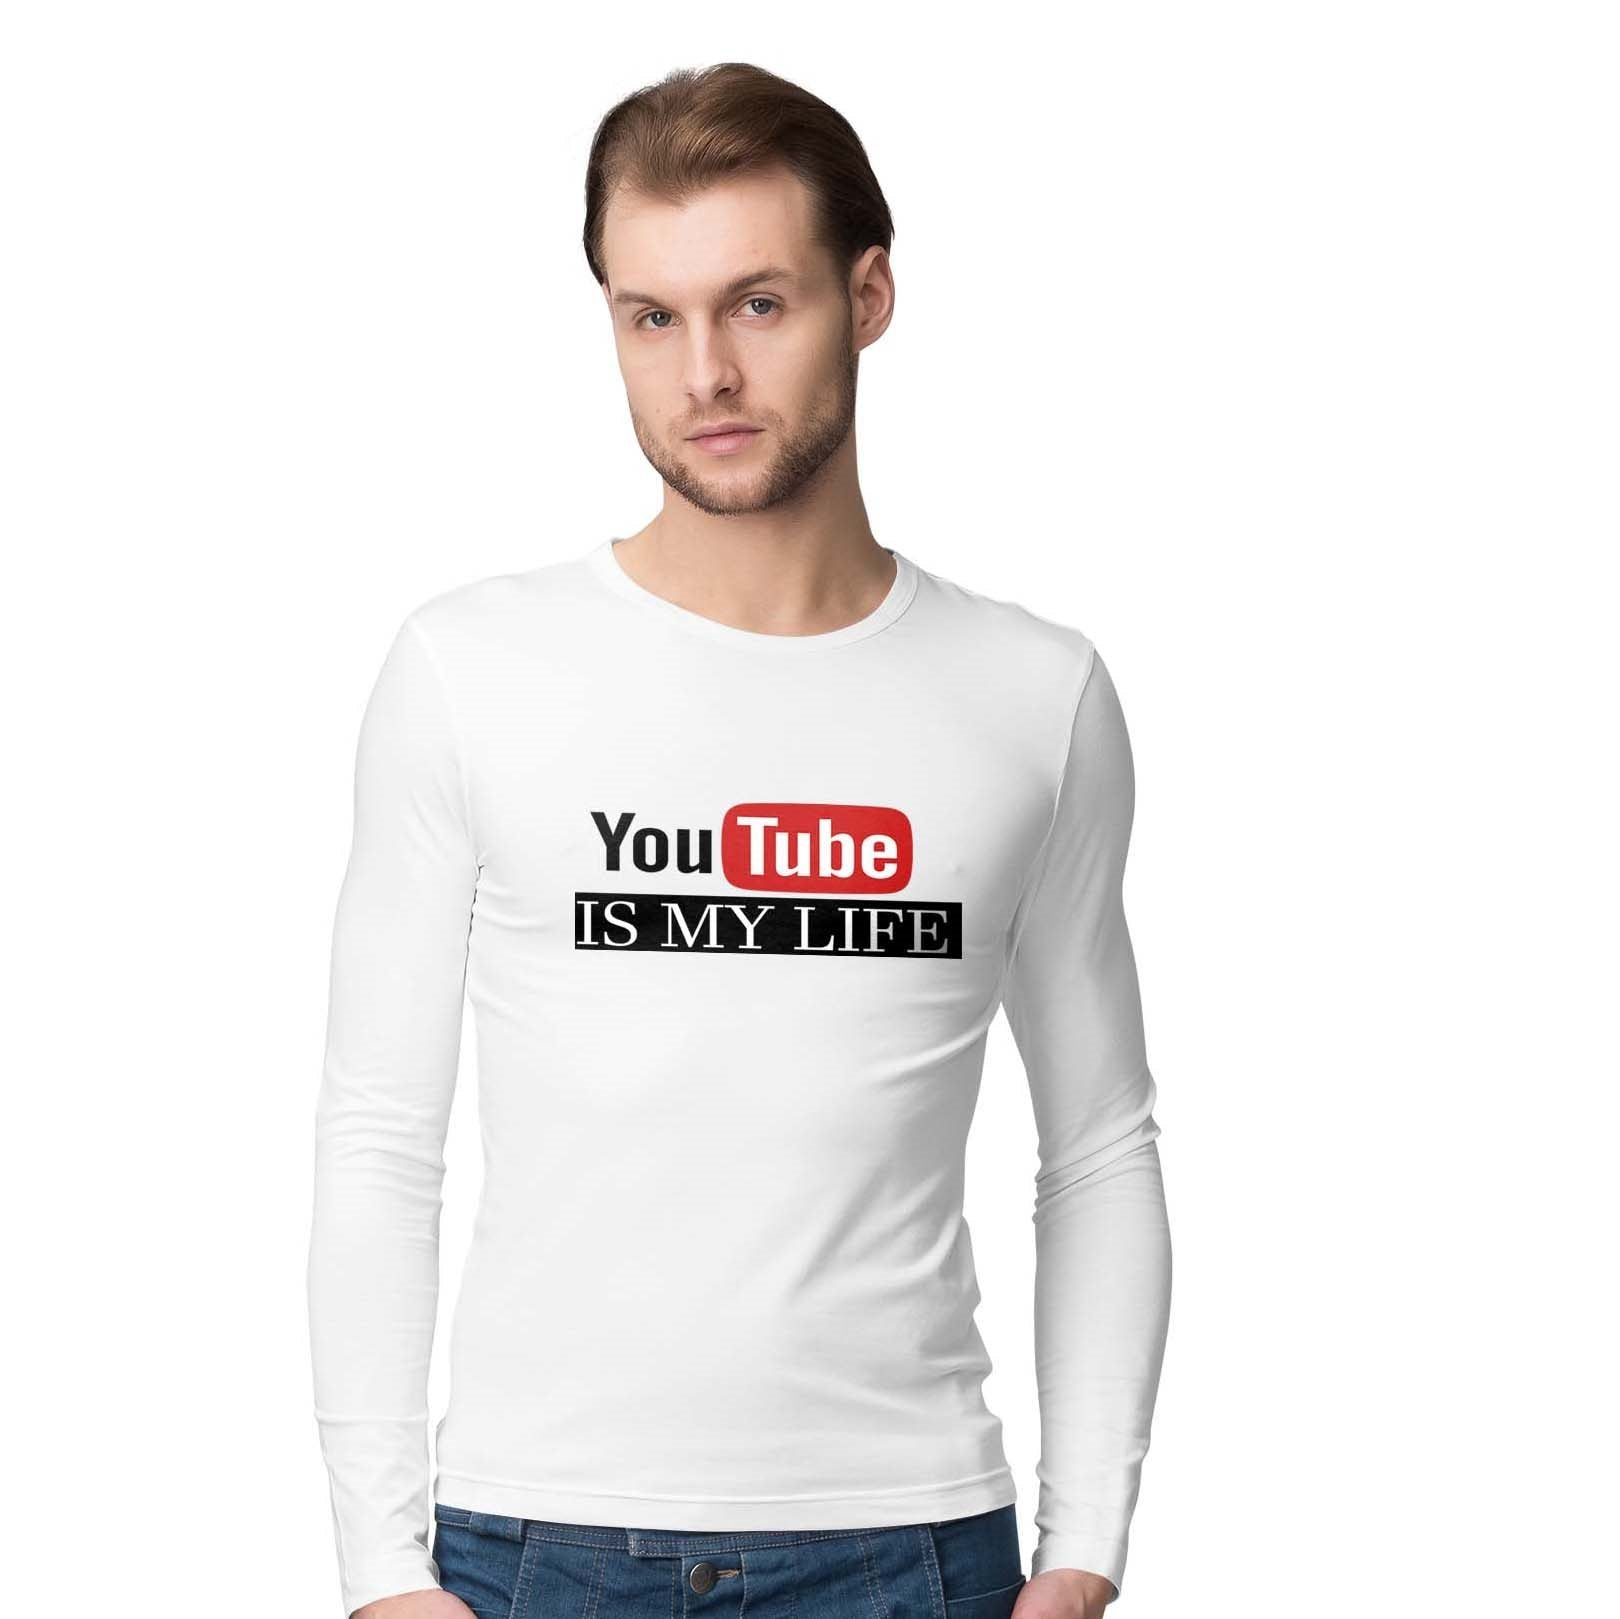 YOUTUBE IS MY LIFE - FULL SLEEVE © - Passion Swap